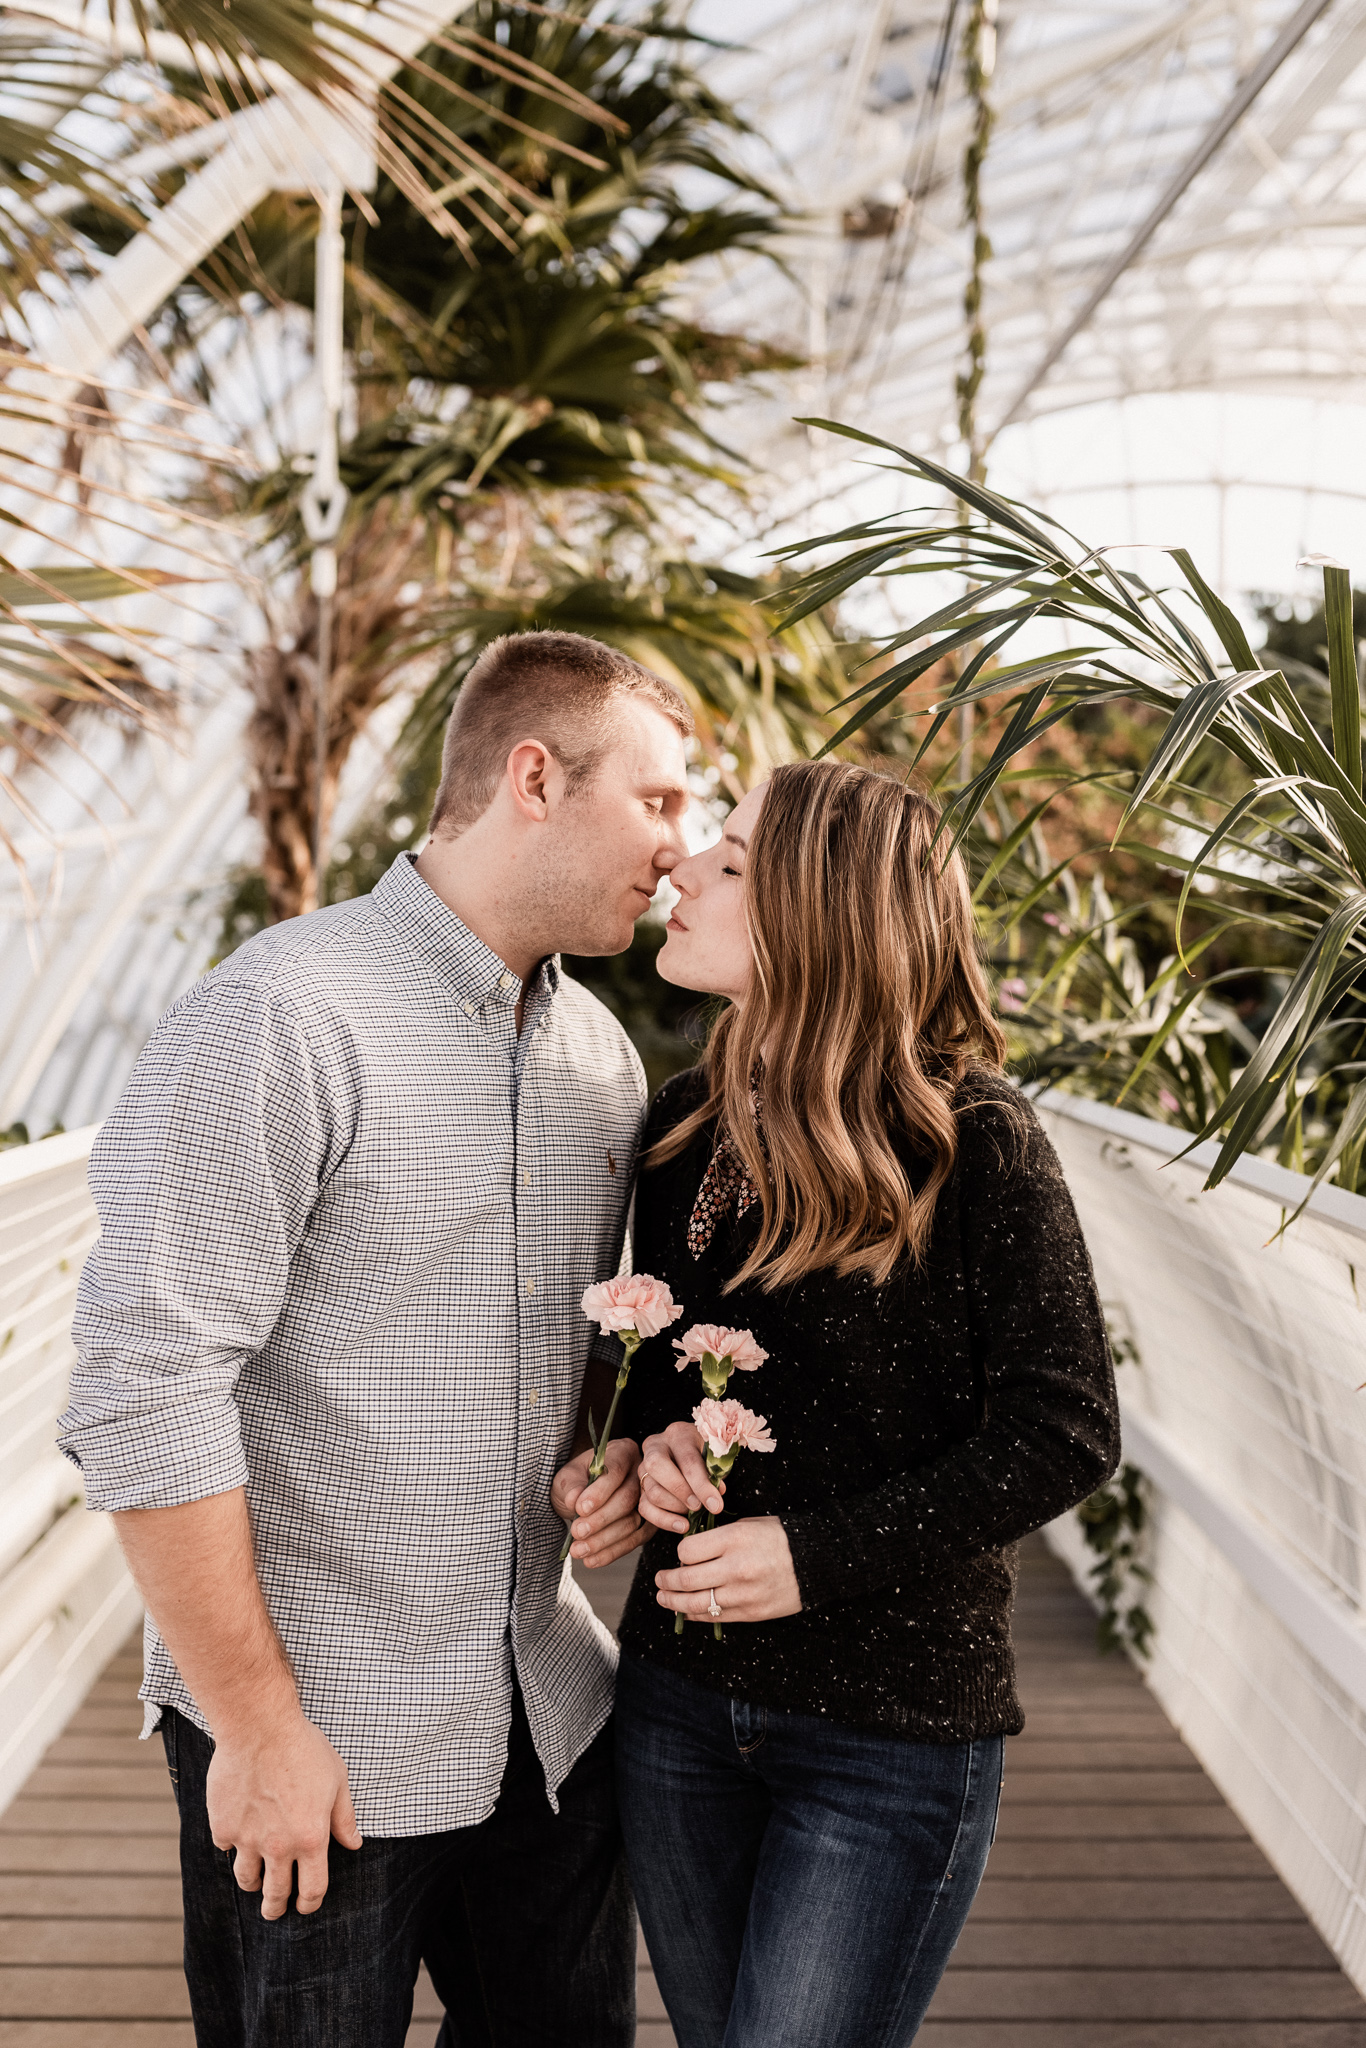 Reagan + Jordan | Tropical Baby Annoucement | Oklahoma Lifestyle Photographer-18.jpg